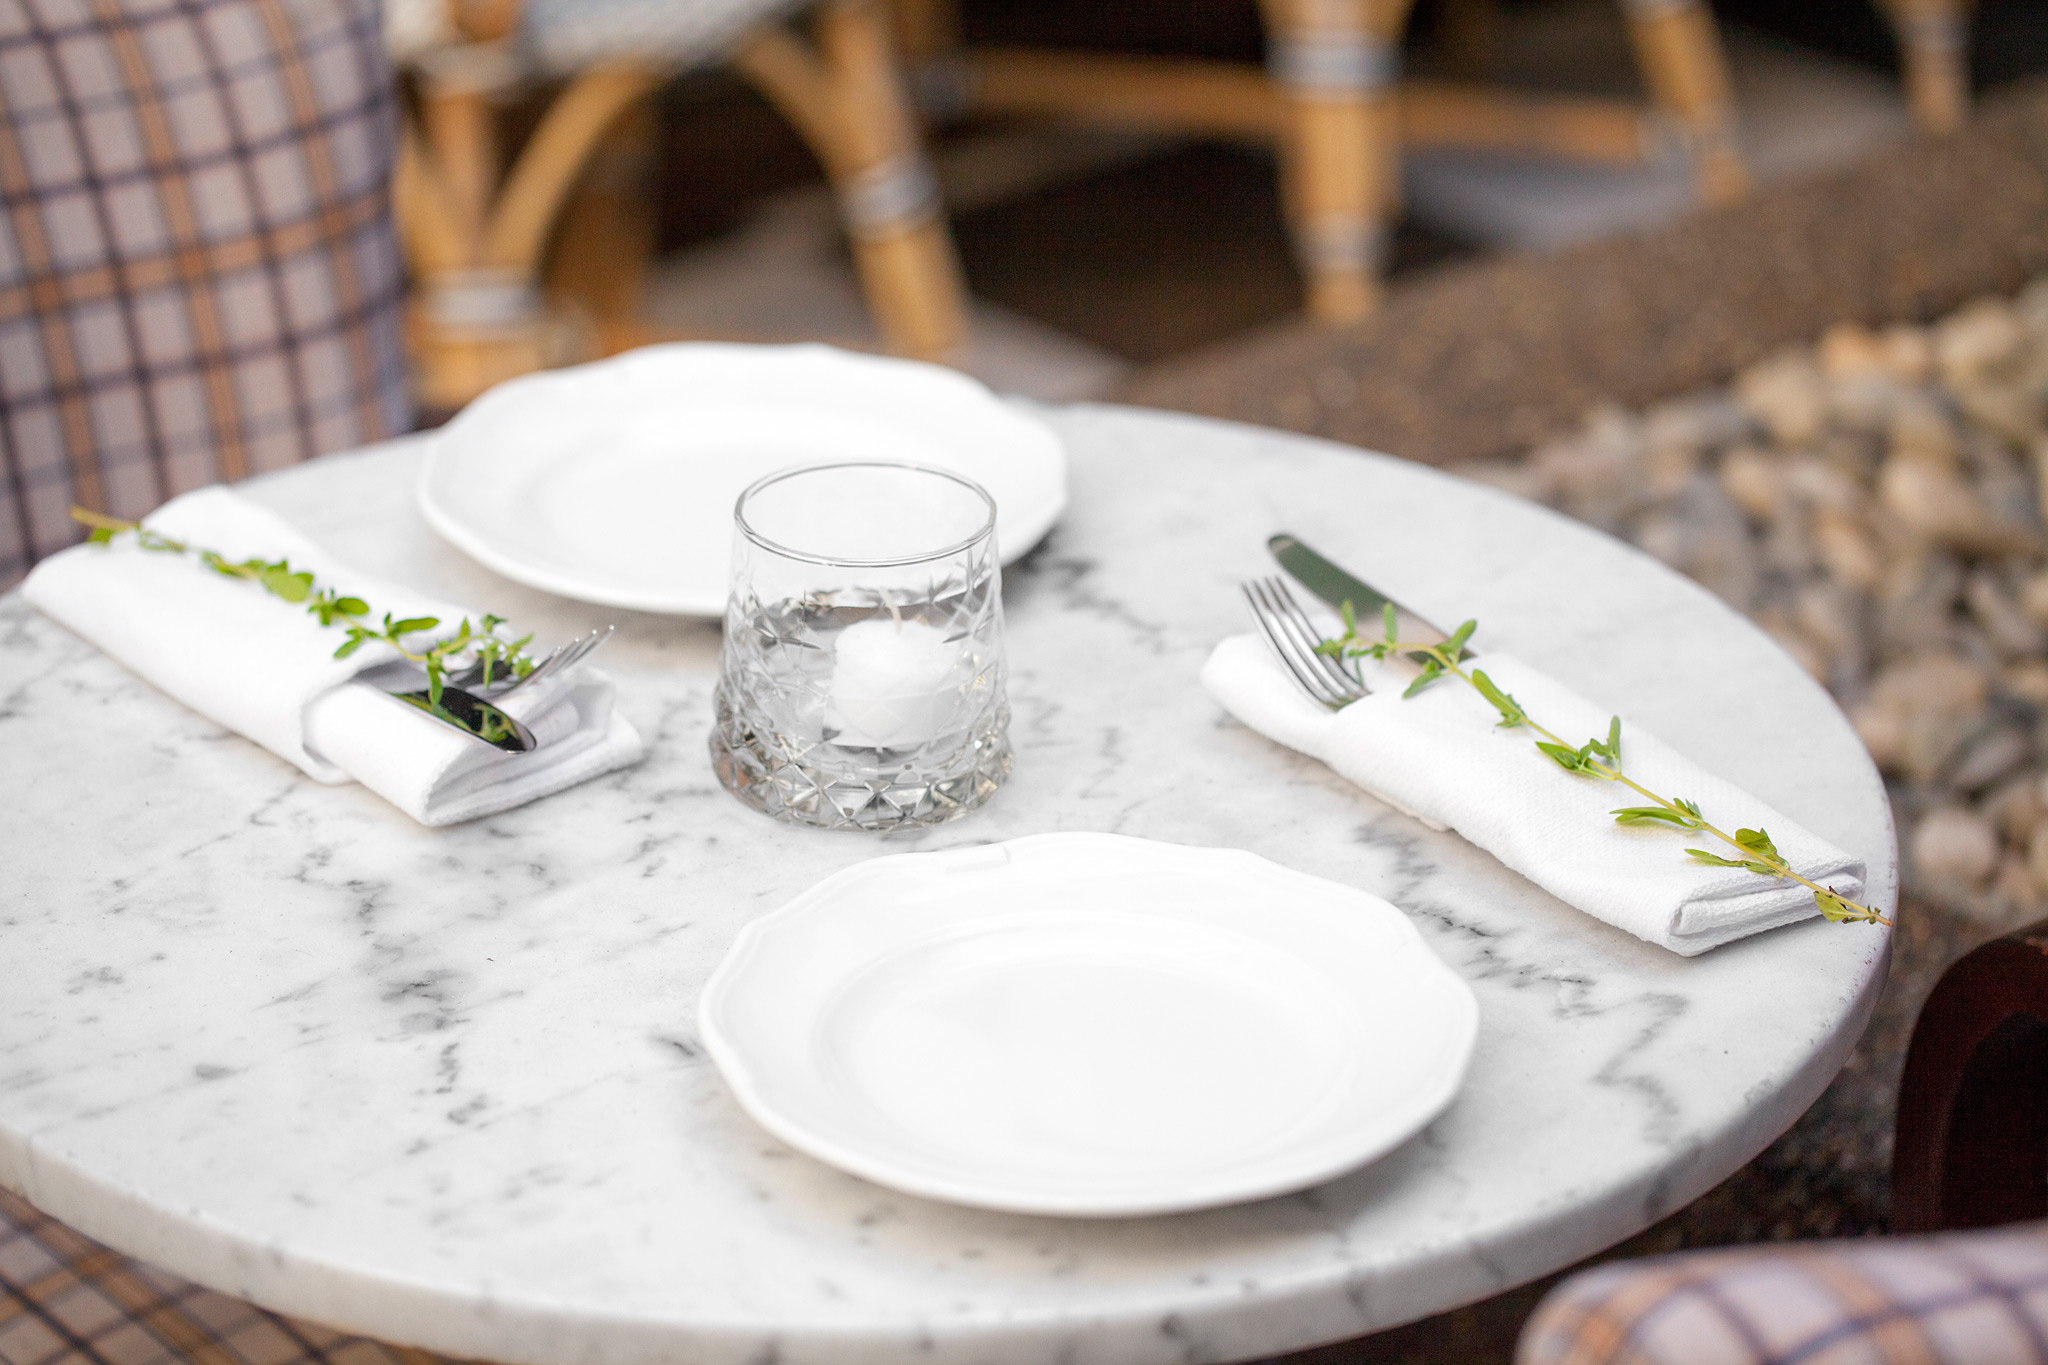 place setting of white dishes on white marble table. Beige plaid chairs.